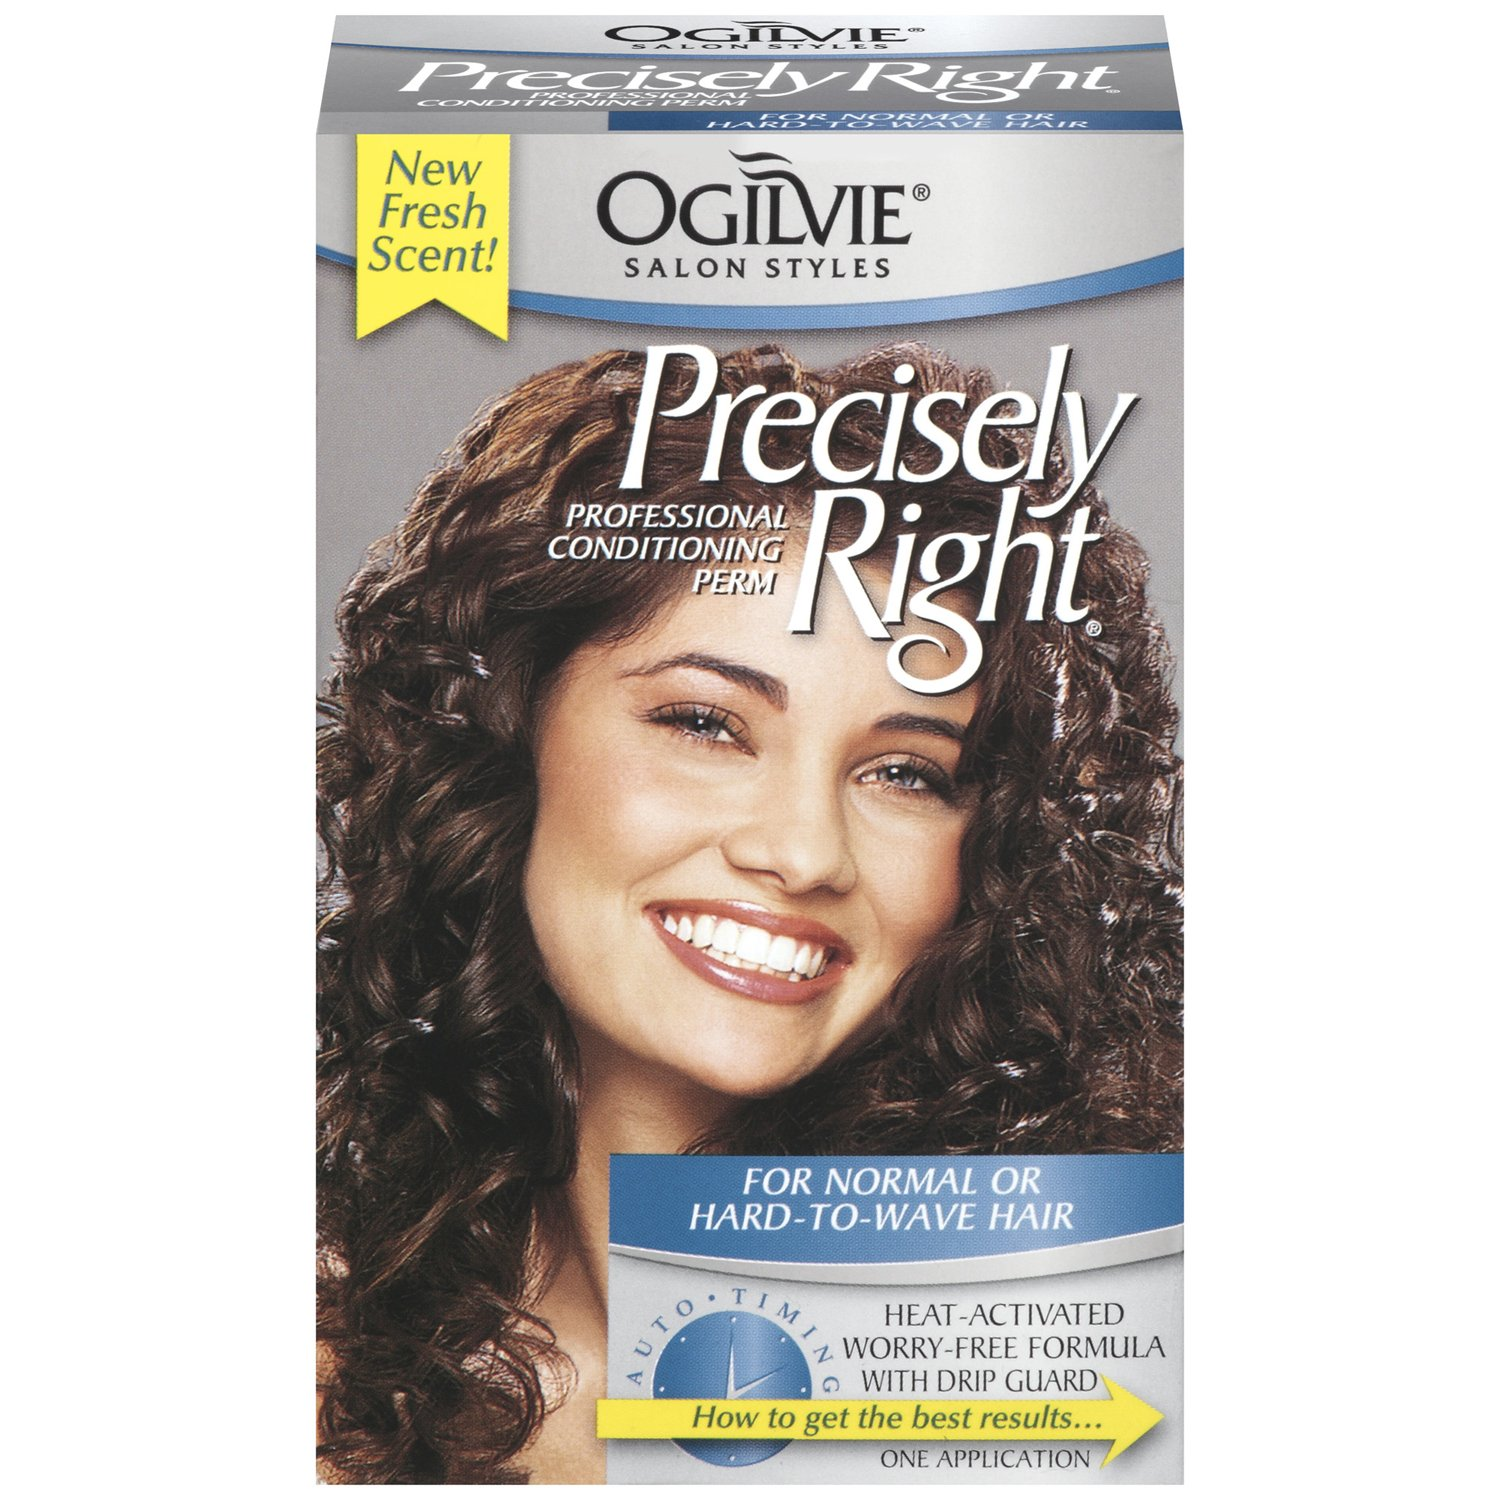 Ogilvie Precisely Right for Normal or Hard to Wave Hair Conditioning Formula